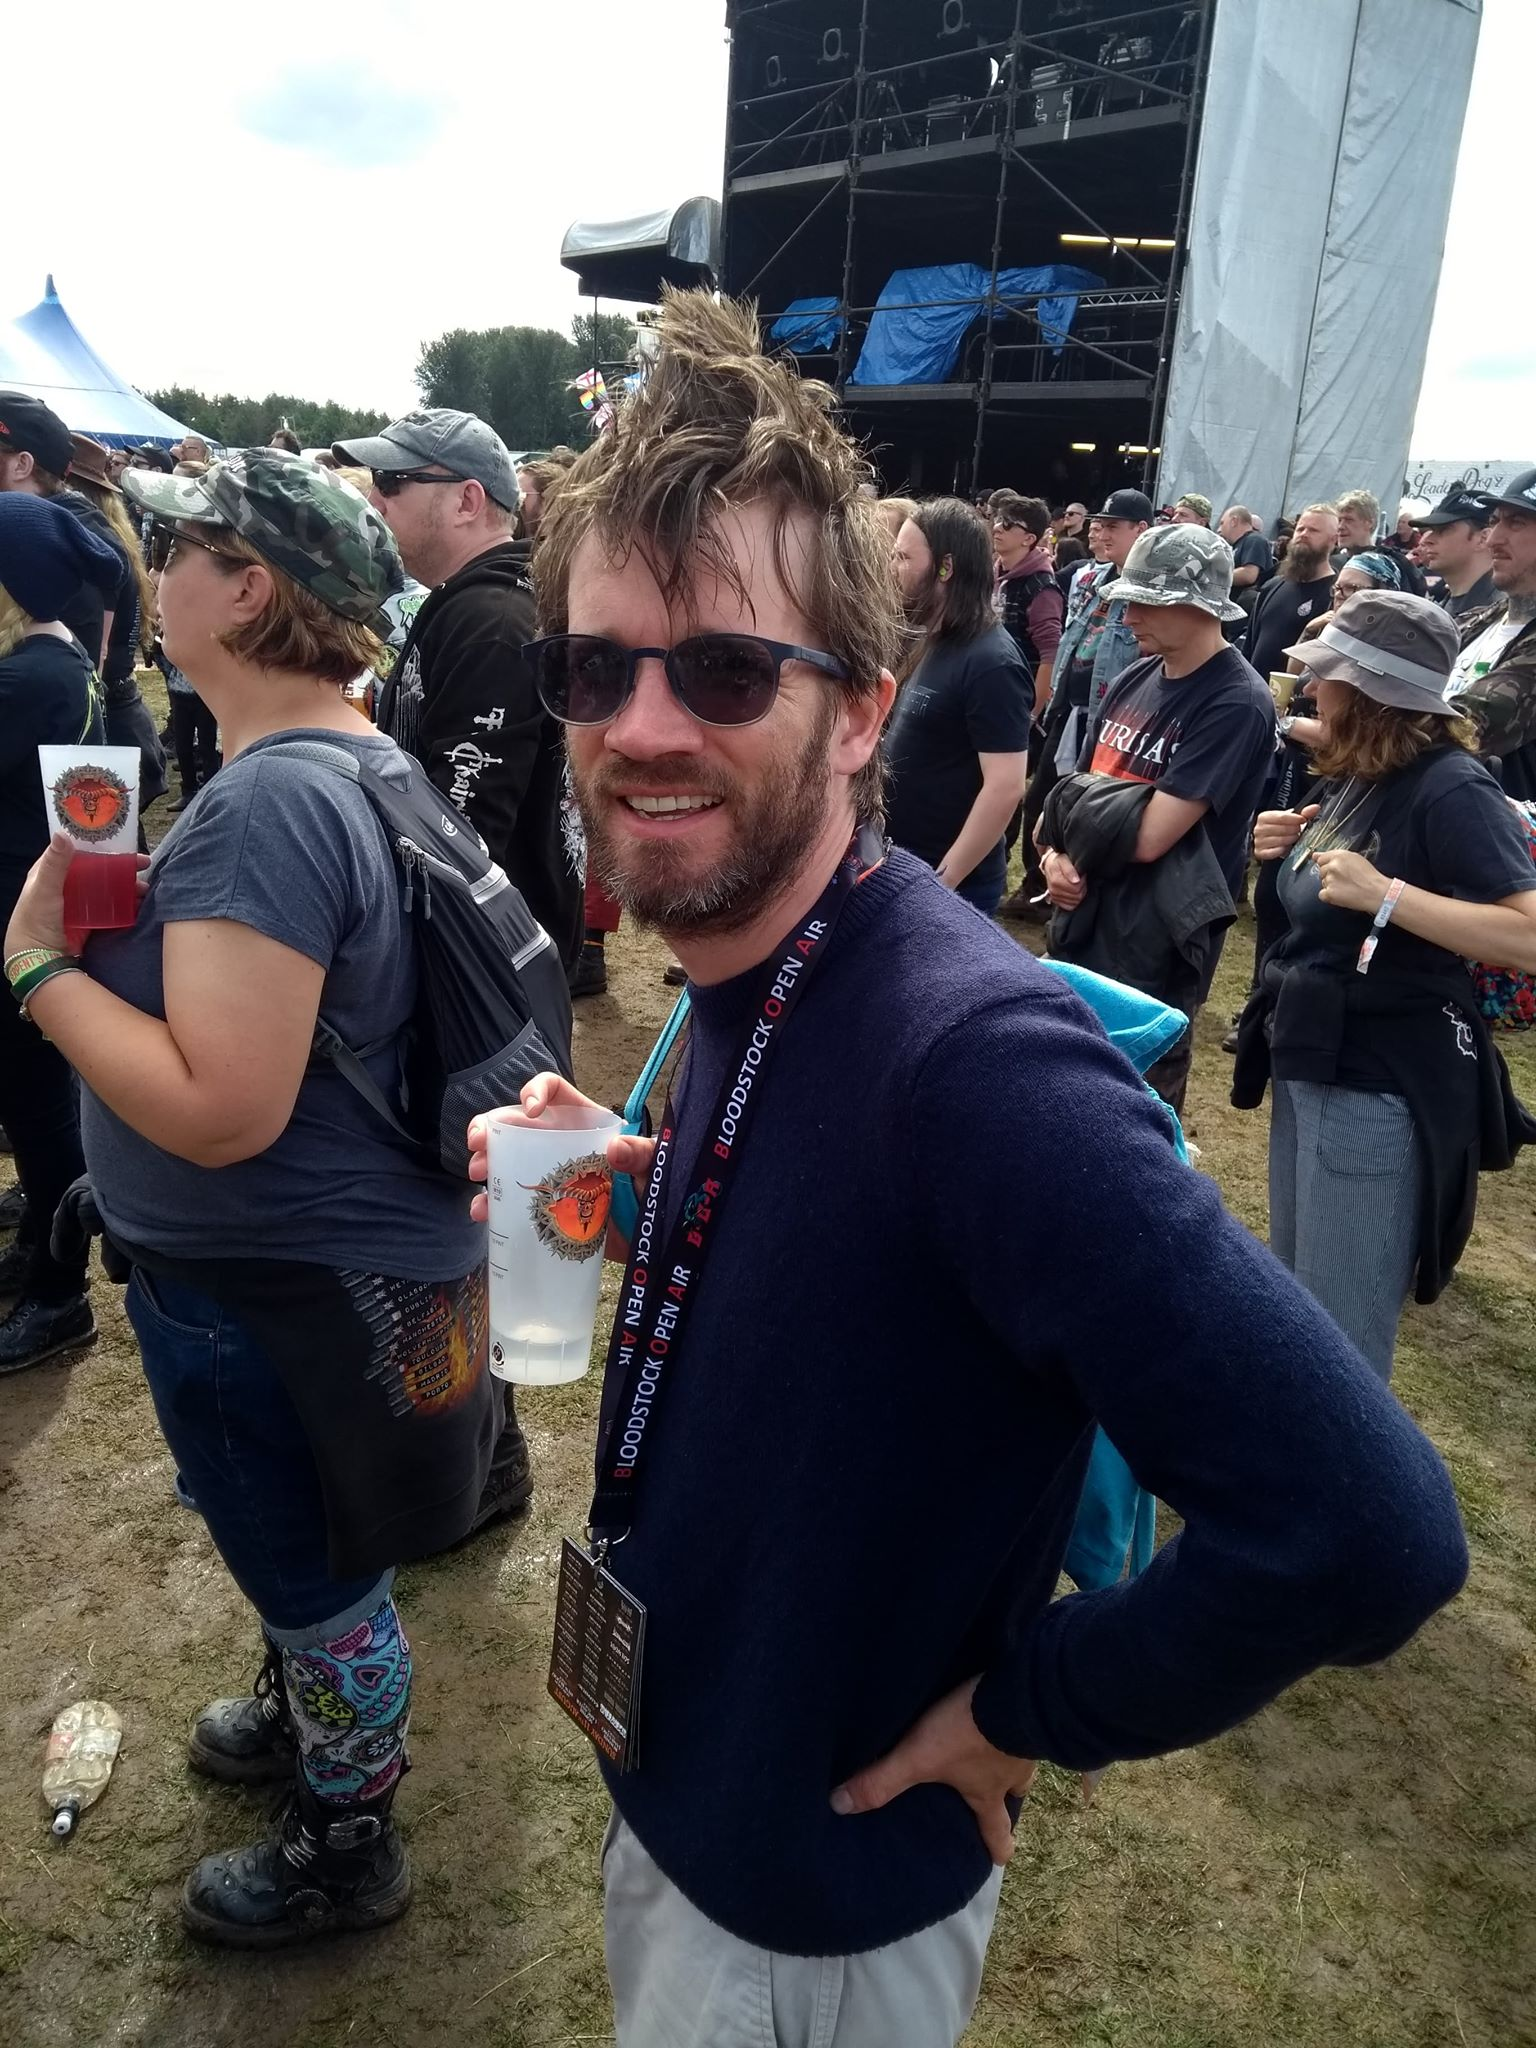 Chris Marshall soaking up the Bloodstock atmosphere.